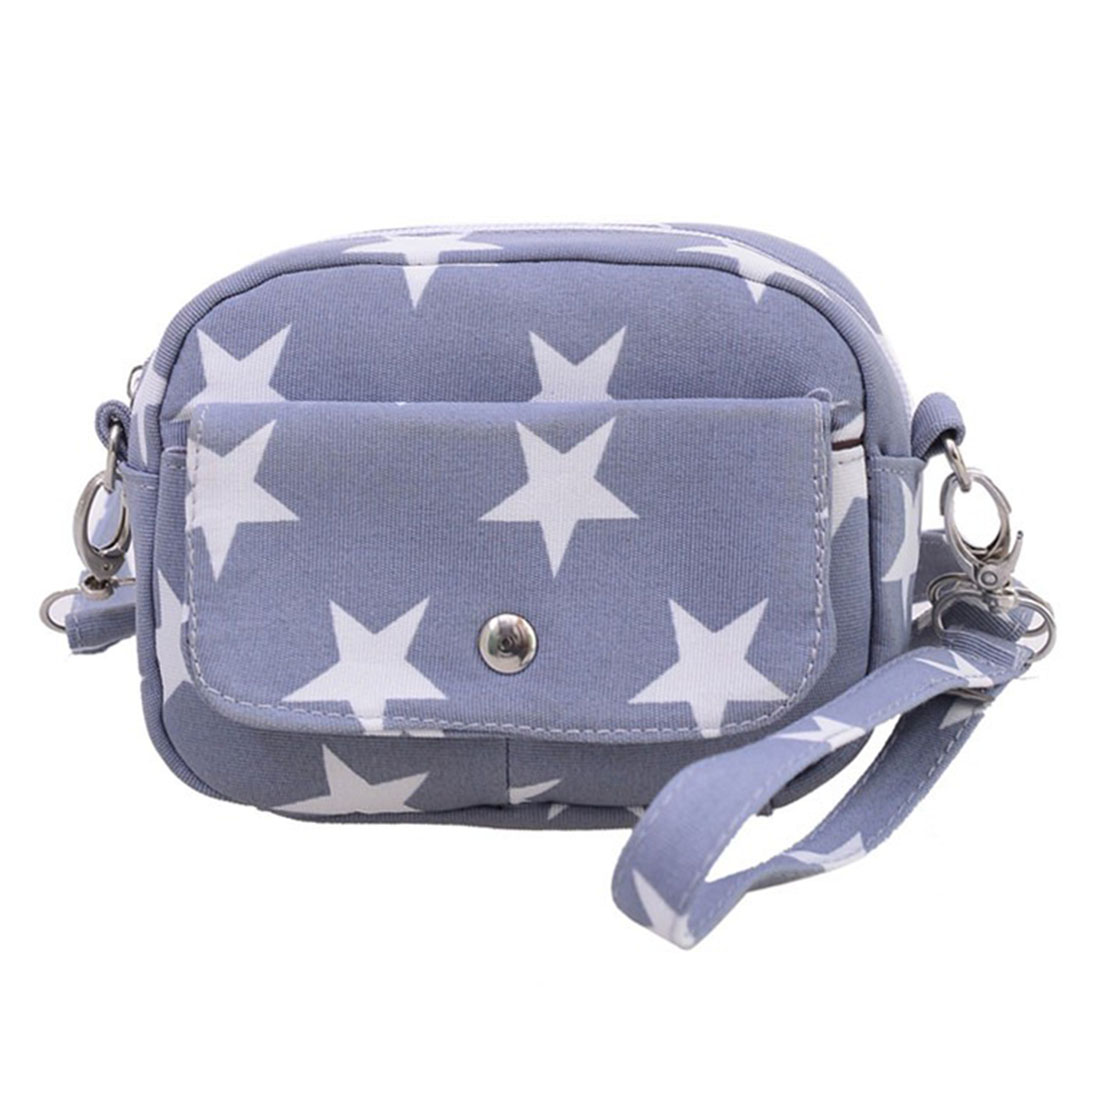 цены Women Clutches New Women Fashion Canvas Bags Mini Small Messenger Shoulder Bag Ladies Star Printed Casual Cross Body Handbag